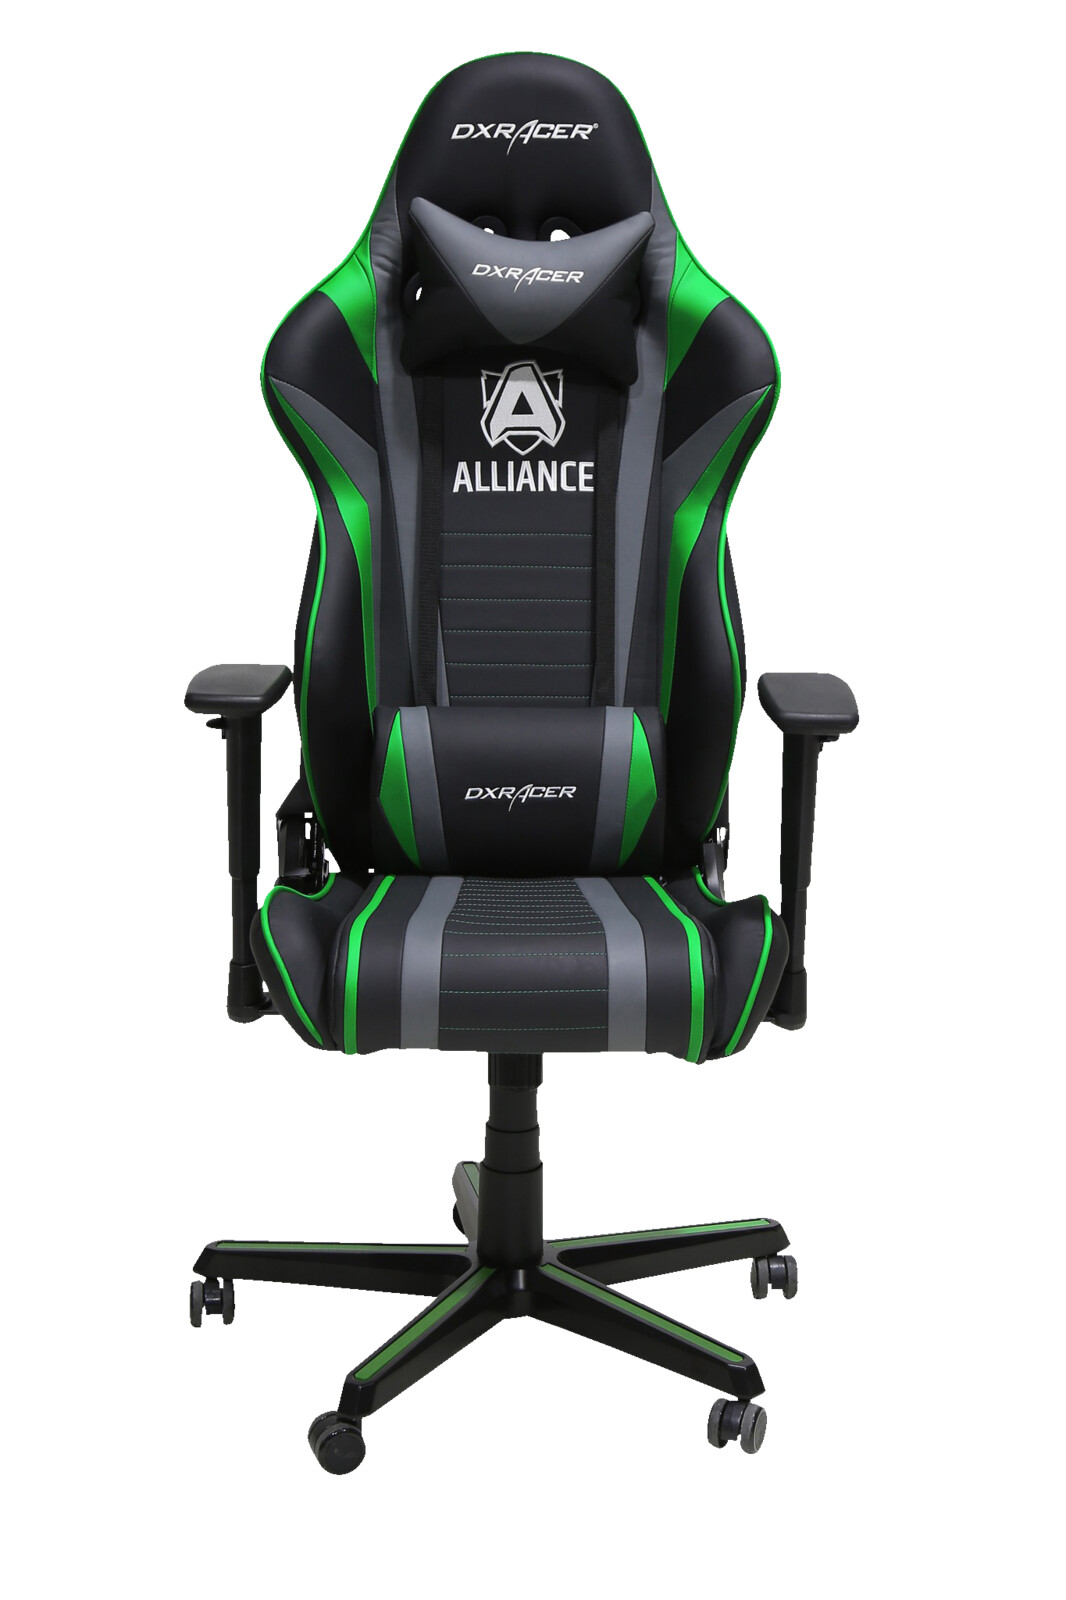 Gamer Sessel Xbox One Details Zu Dxracer Racing R59 Gaming Chair Alliance Edition Gaming Stuhl Schwarz Grün